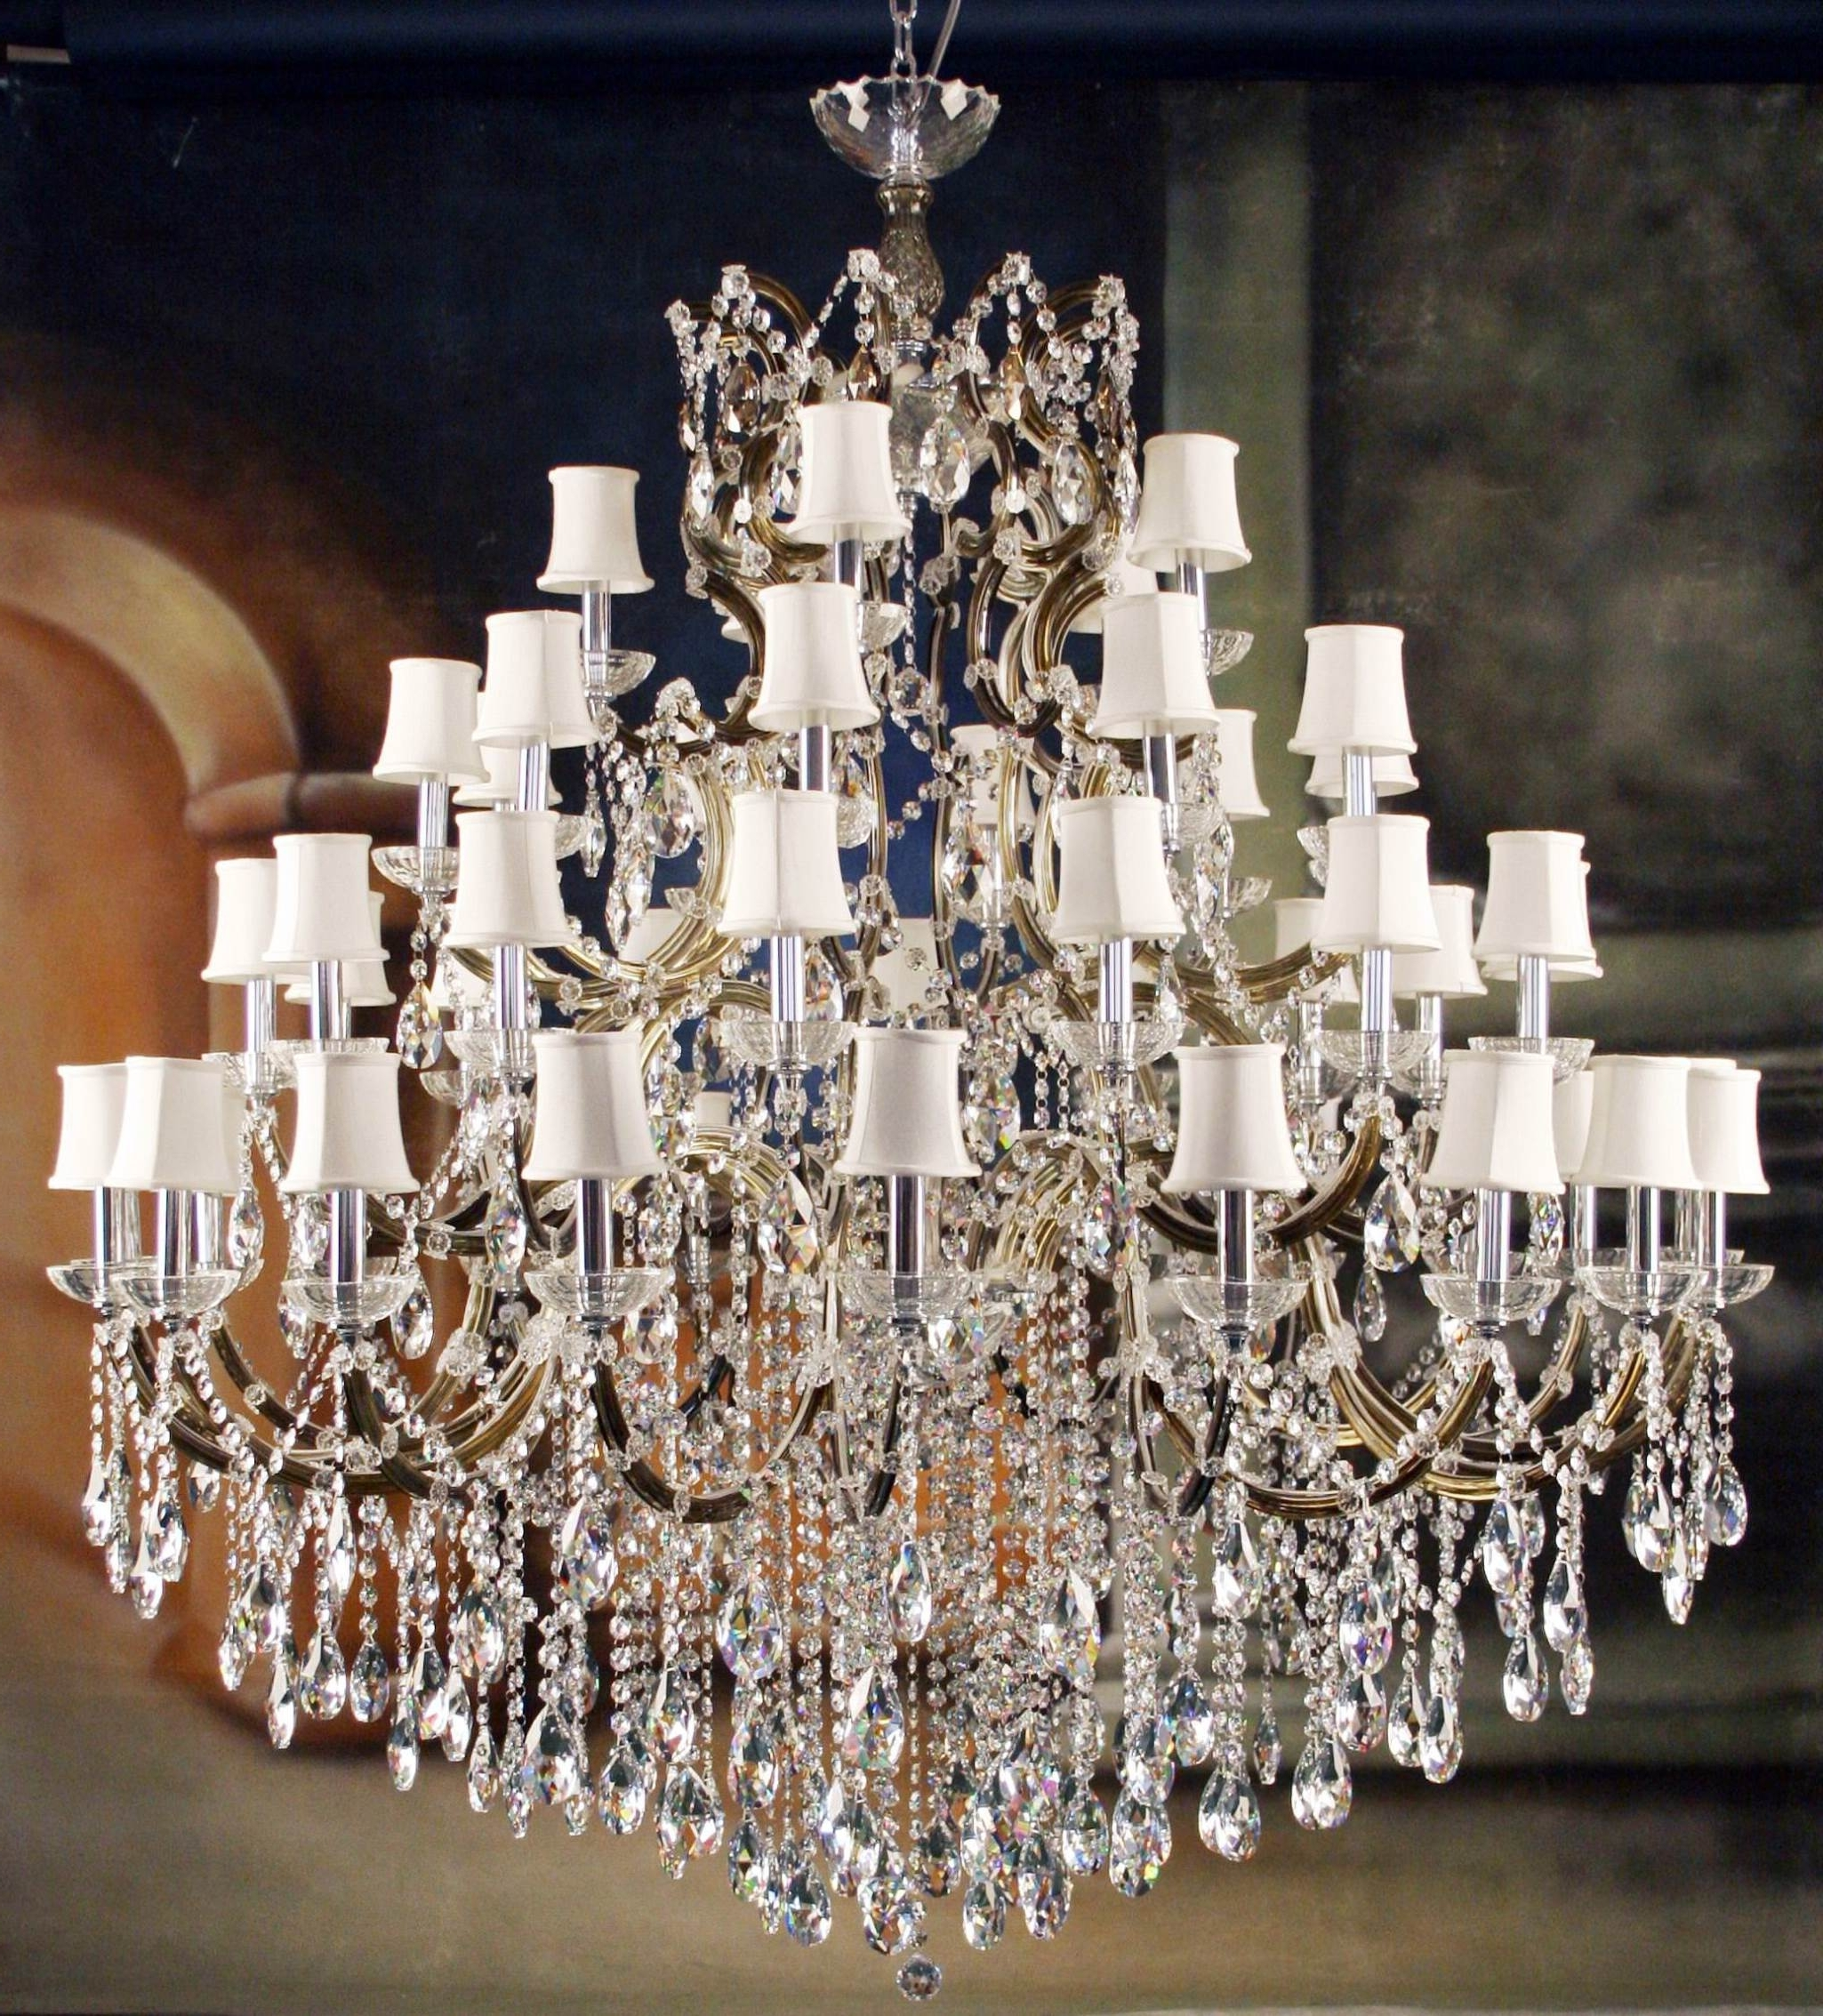 Chandeliers For Kids Intended For 2018 Light : Chandelier Store Kichler Vanity Lights For Kids Room (View 6 of 20)